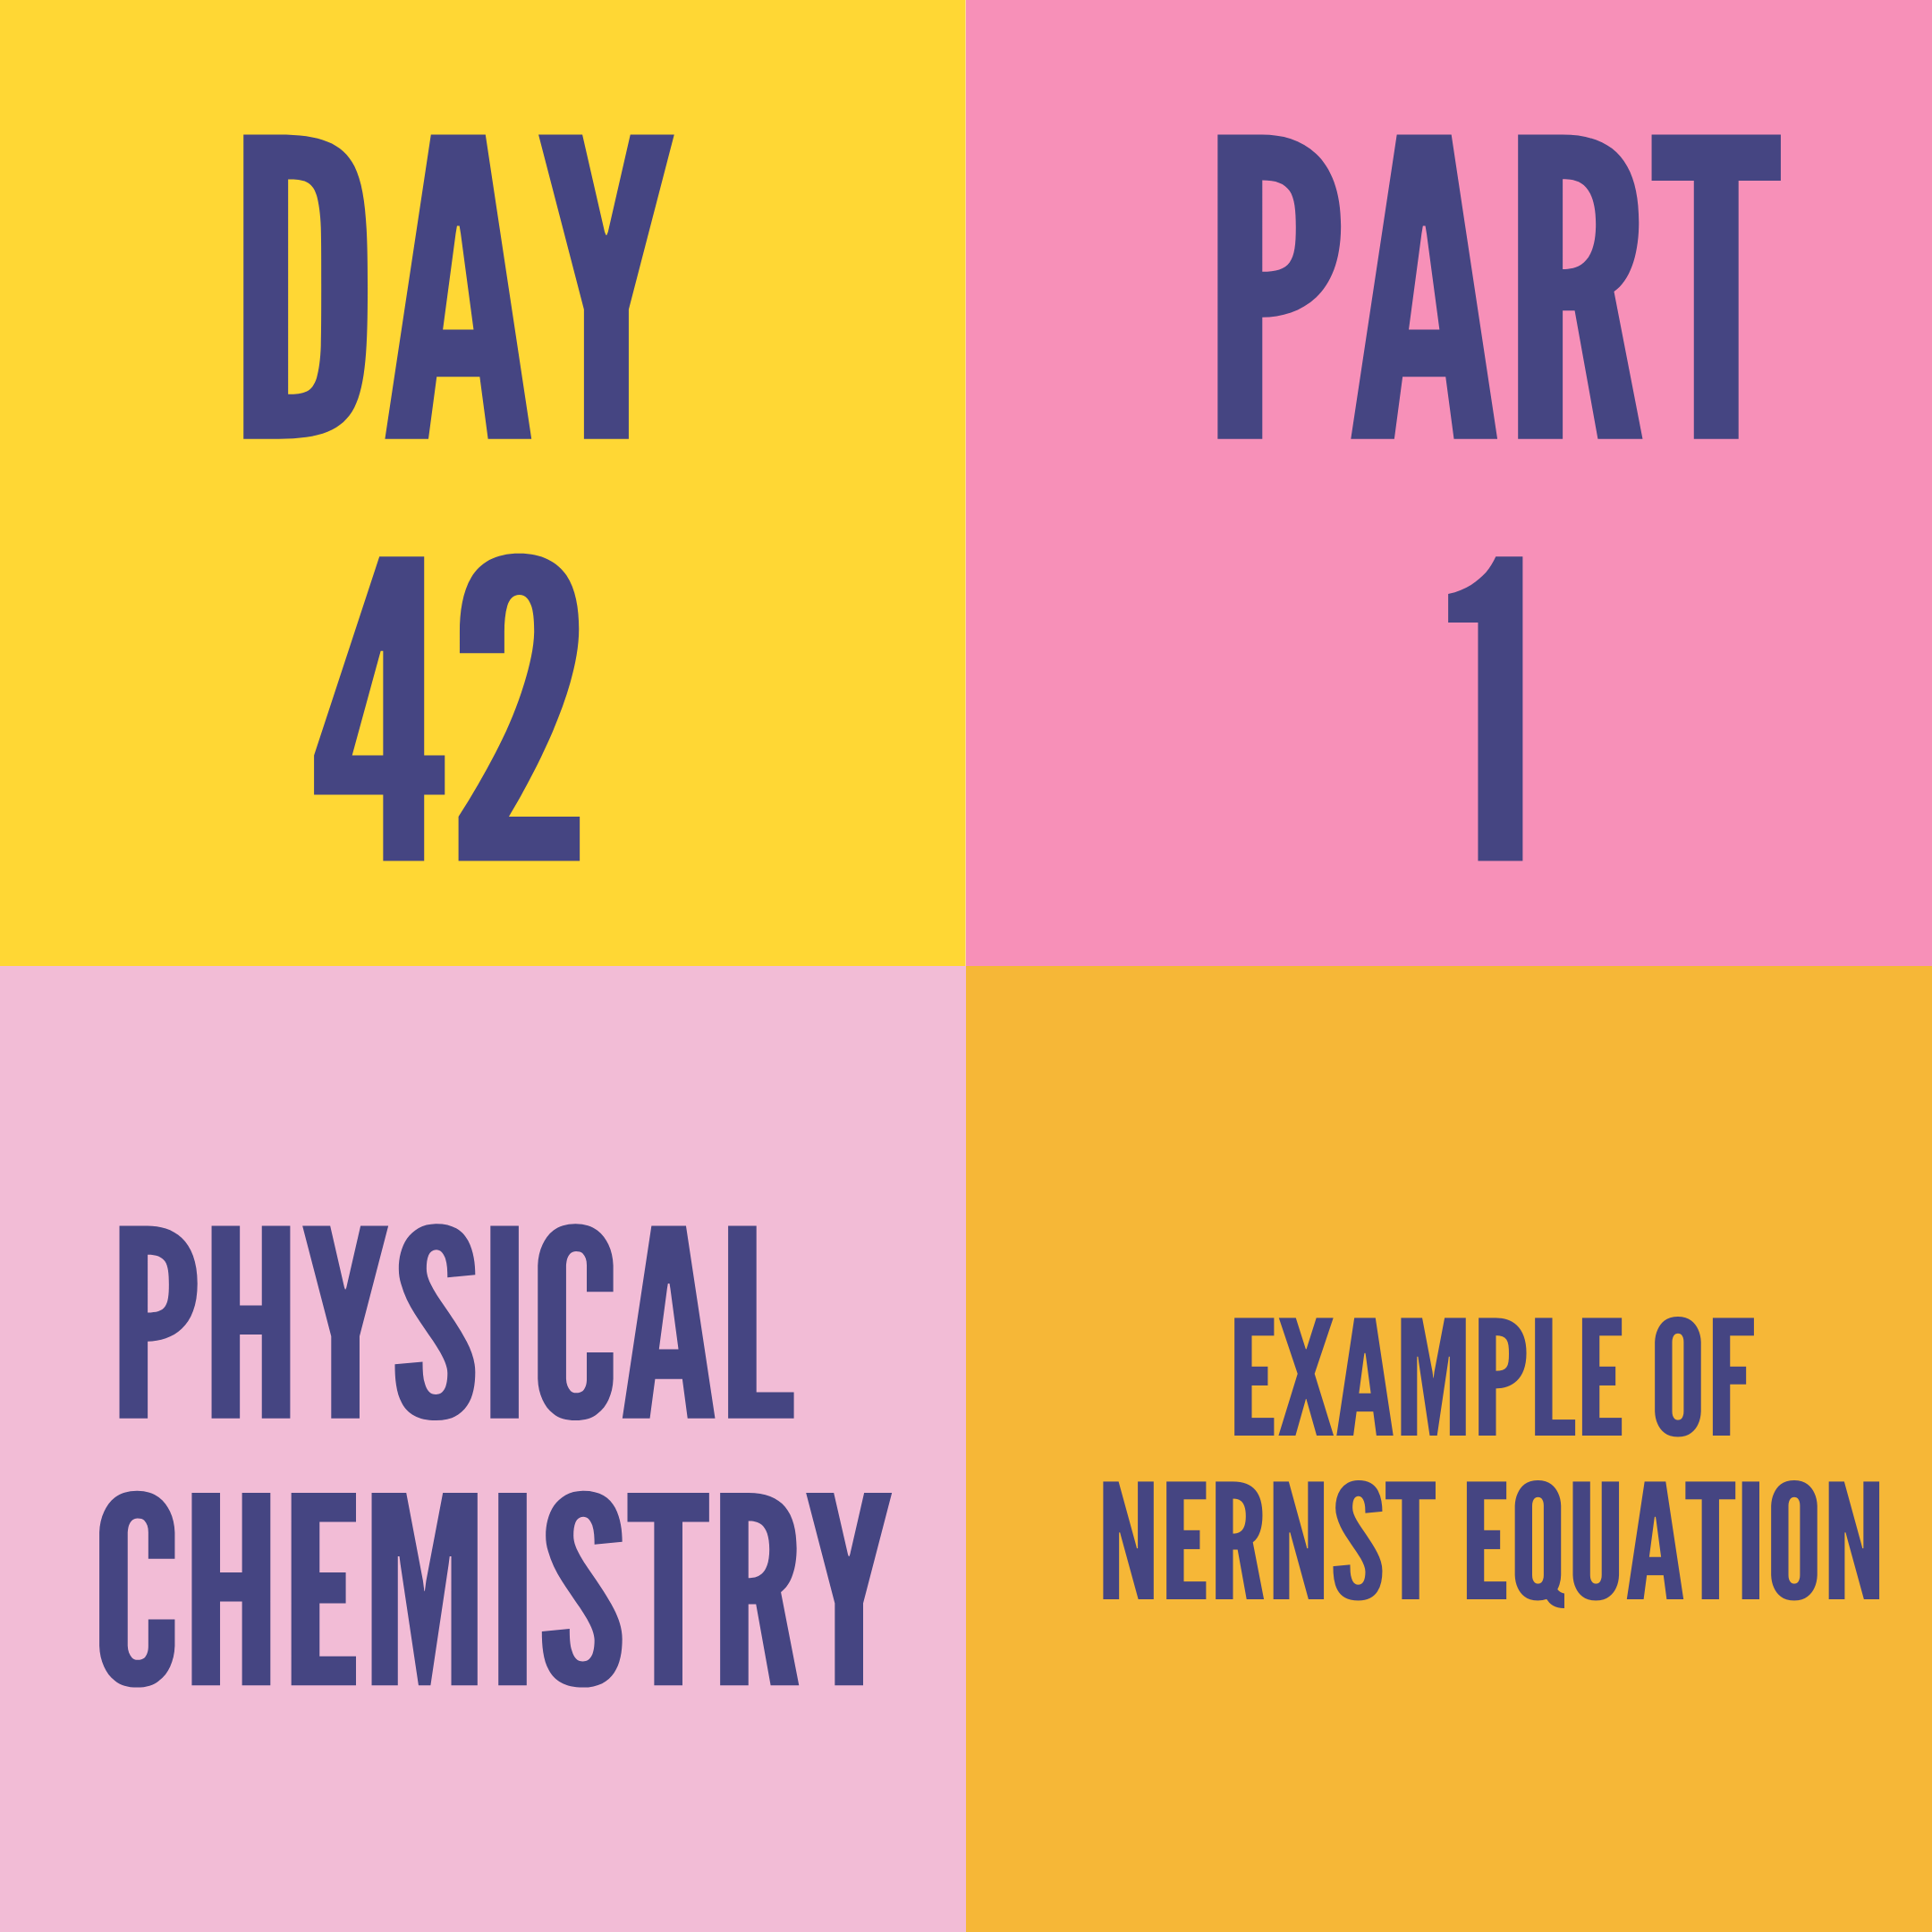 DAY-42 PART-1 EXAMPLE OF NERNST EQUATION